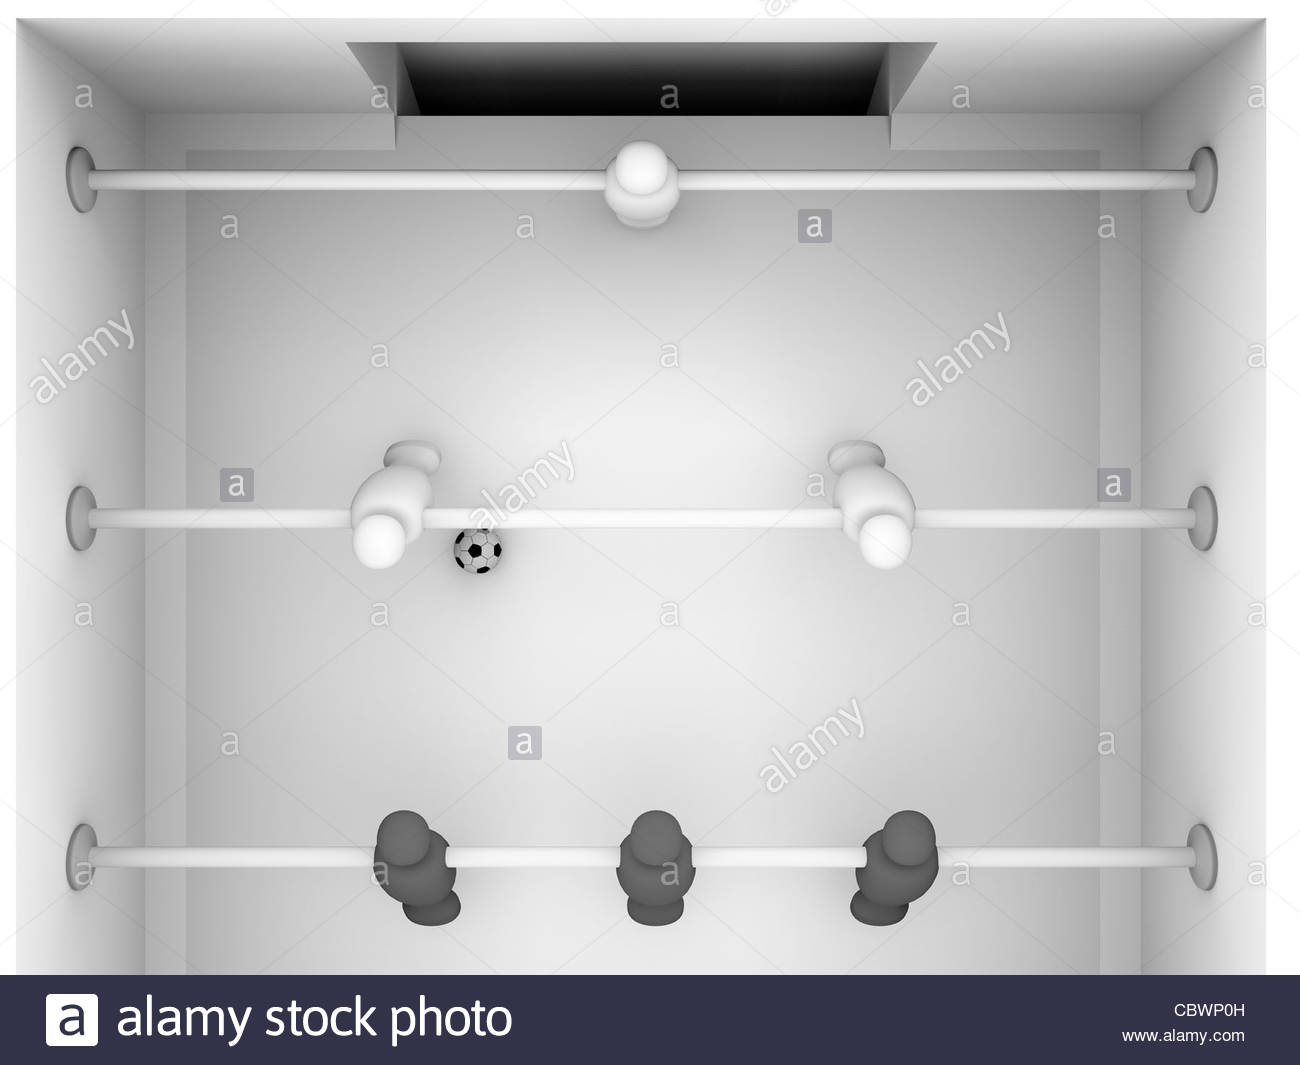 3d render of a foosball table with black and white players - Stock Image